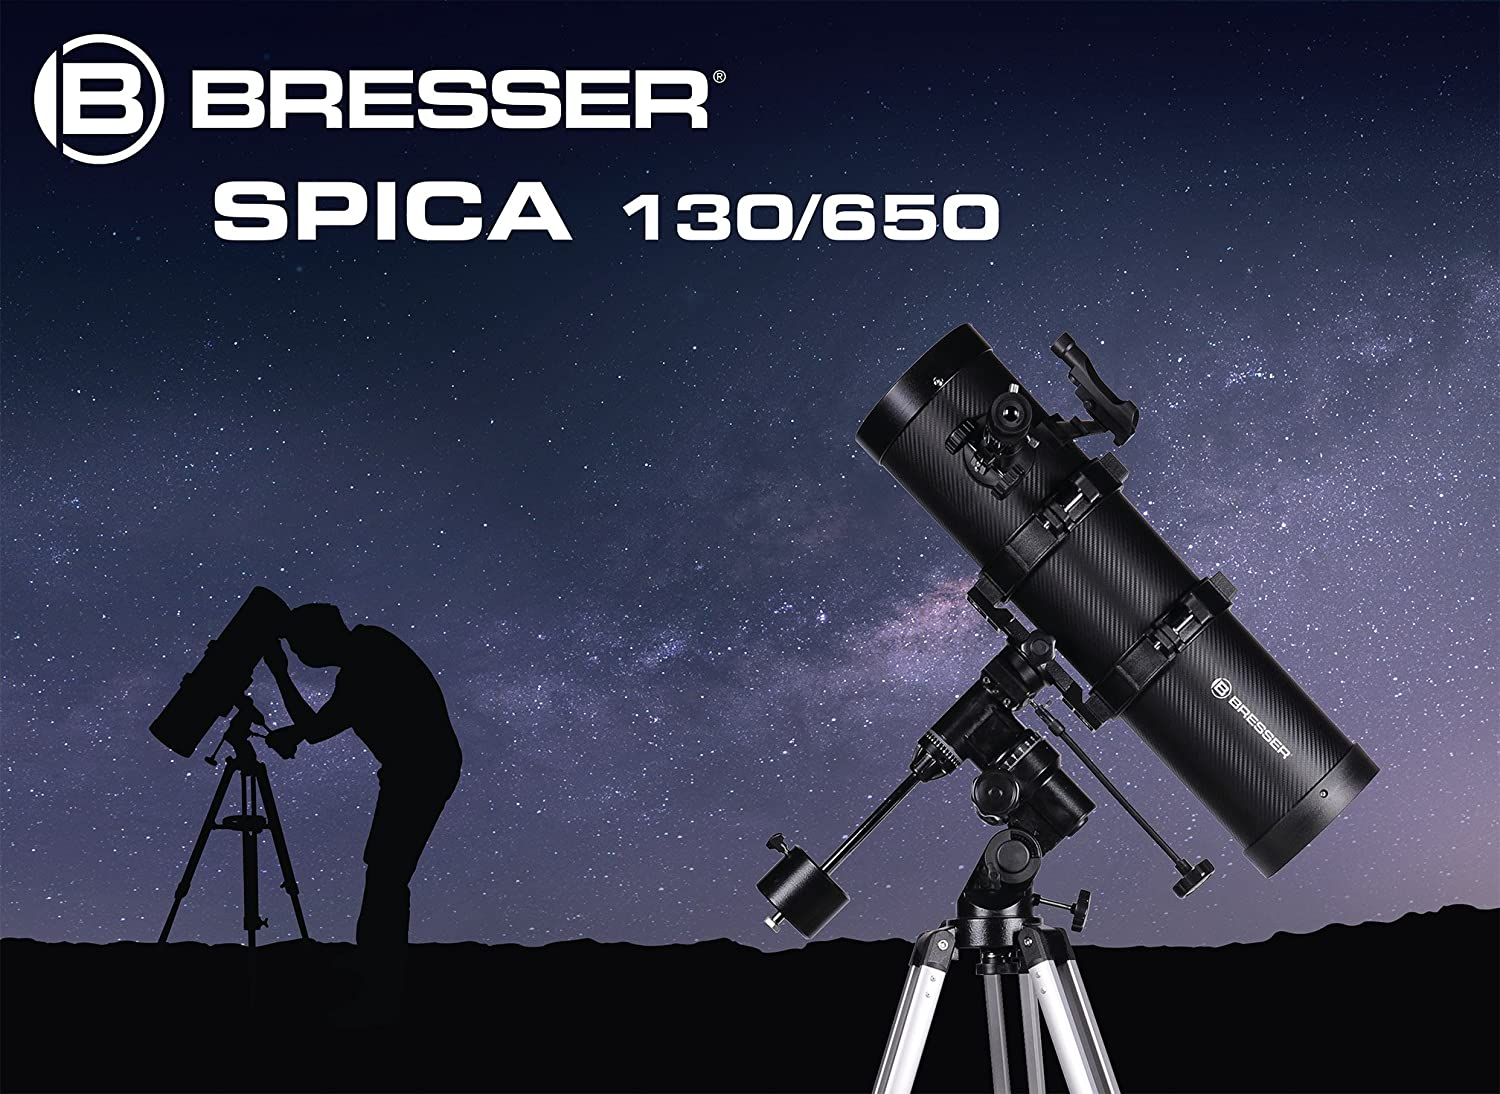 Bresser optik messier mc exos goto spiegel teleskop